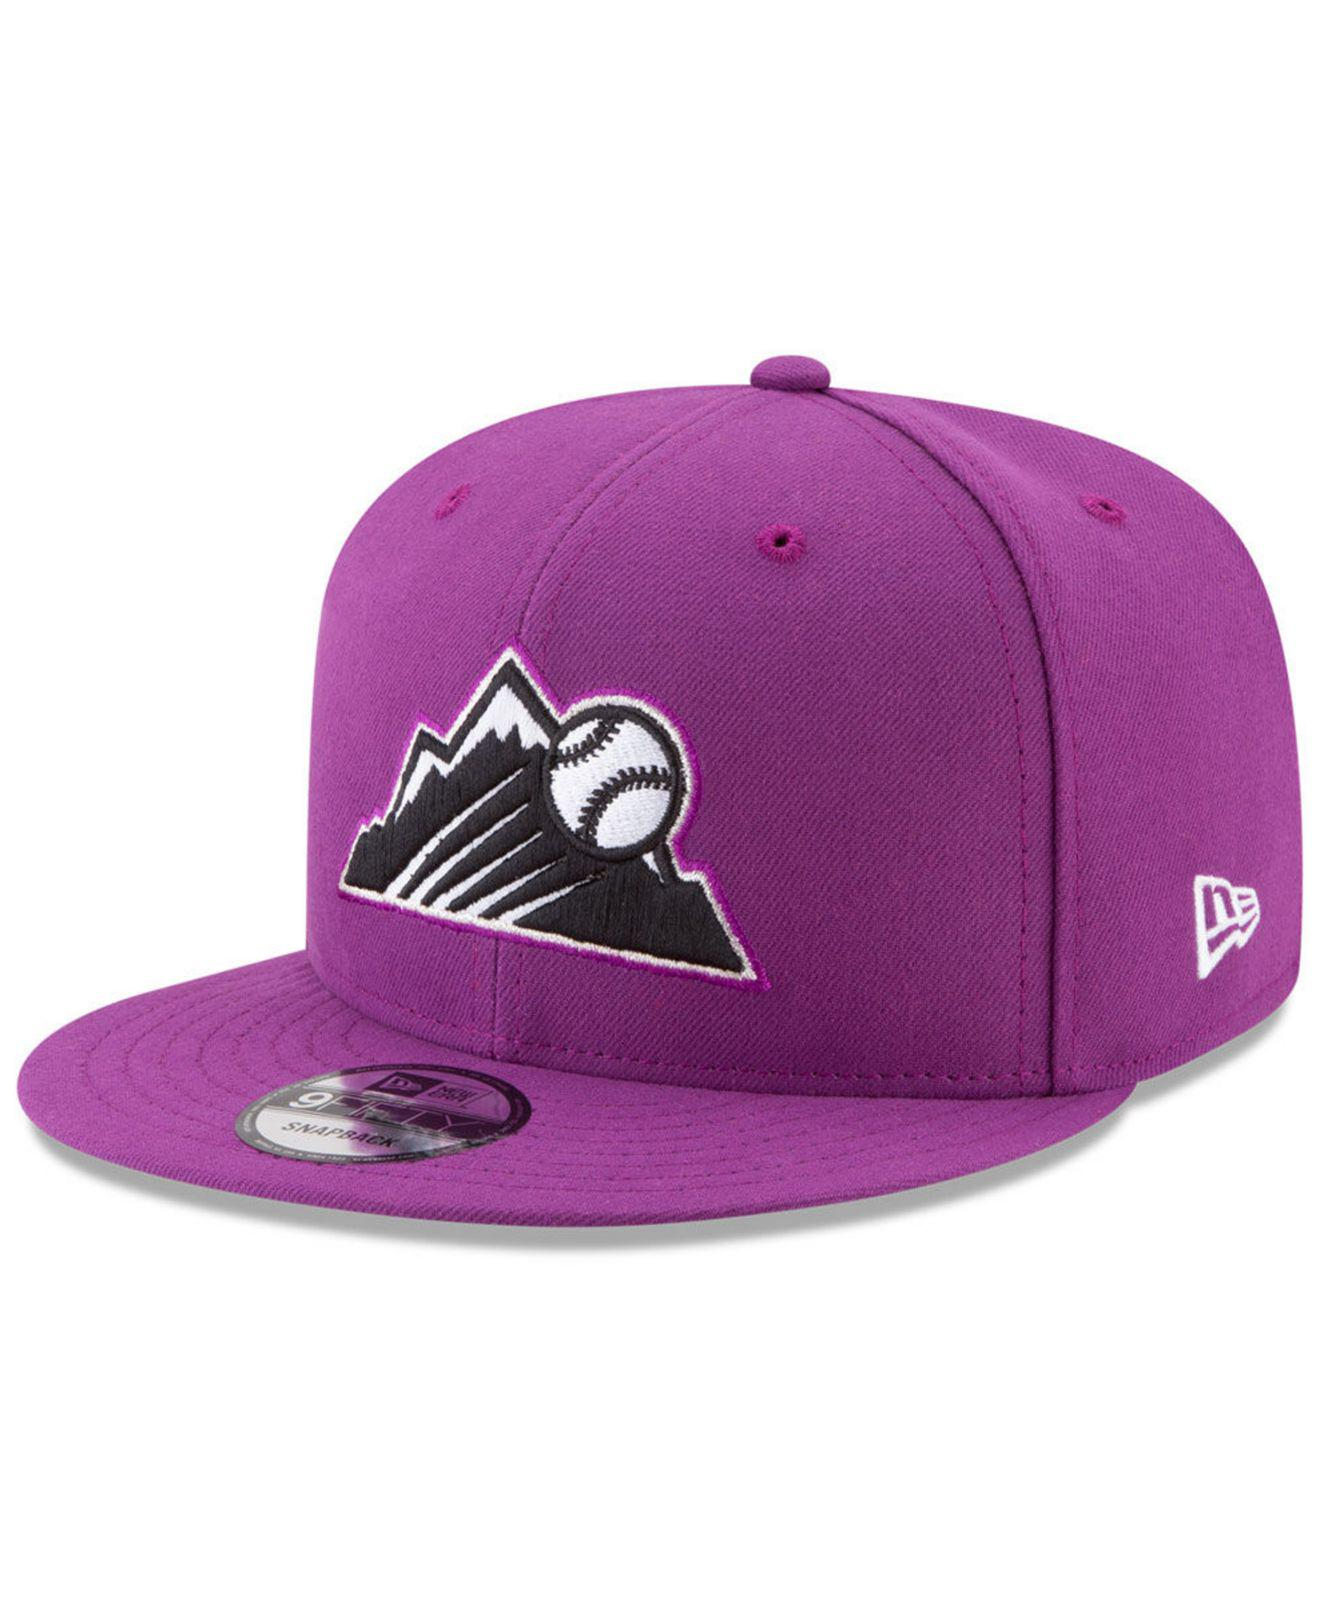 size 40 8a340 95831 KTZ Colorado Rockies Players Weekend 9fifty Snapback Cap in Purple ...